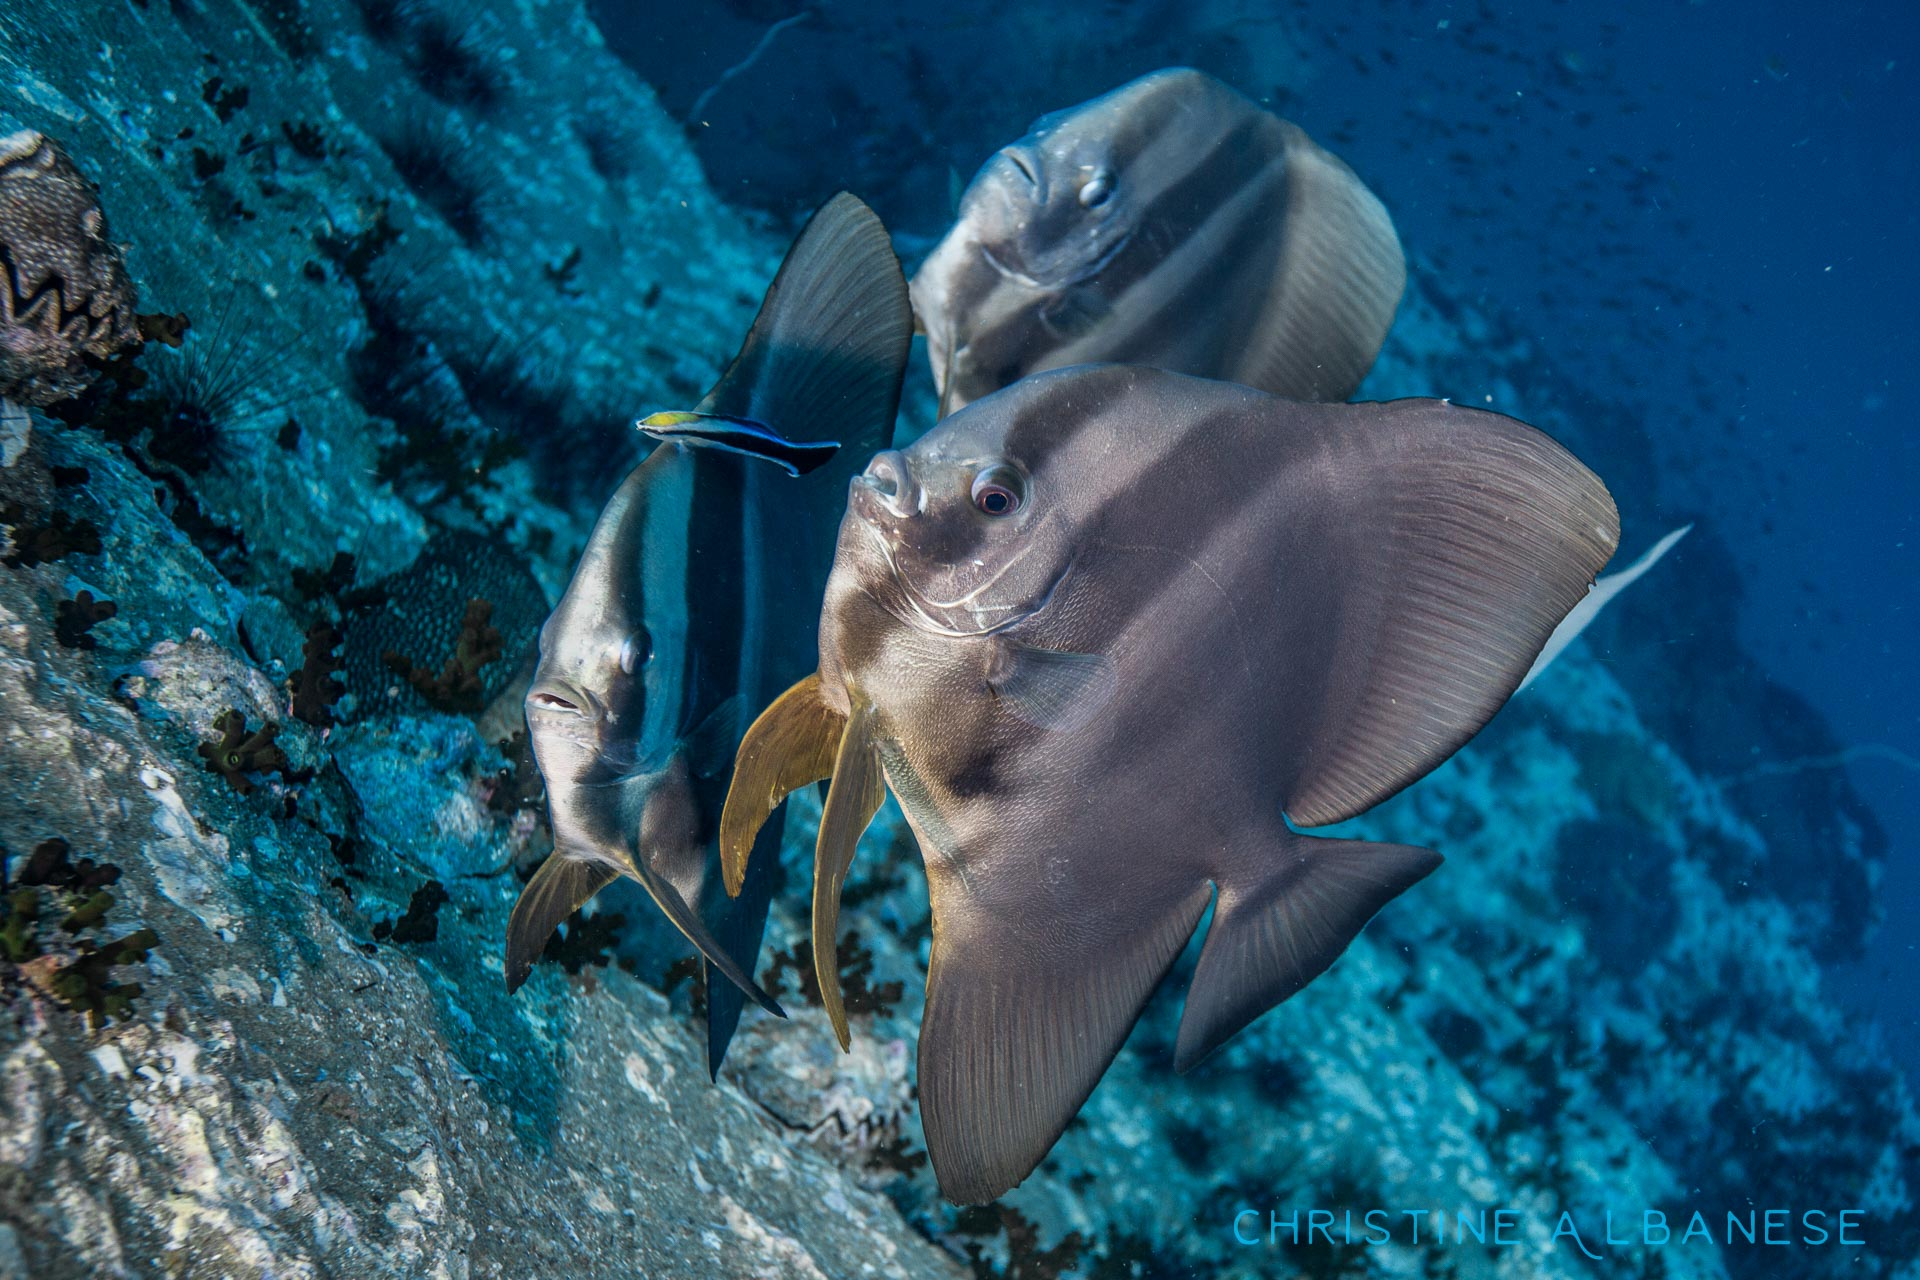 I love batfish! They have a silly face, amusing behaviour and they are very curious! Here is a trio of batfish at a cleaning station.  Tall-Fin Batfish (Platax Teira) #deepblue #underwaterphotography #underwater #underwaterdiving #ikelite #canon6d #wideangle #chumphonpinnacle #kohtao #thailand #batfish #cleaningstation #canon1740 #ds160 #wrasse #adventure #padi